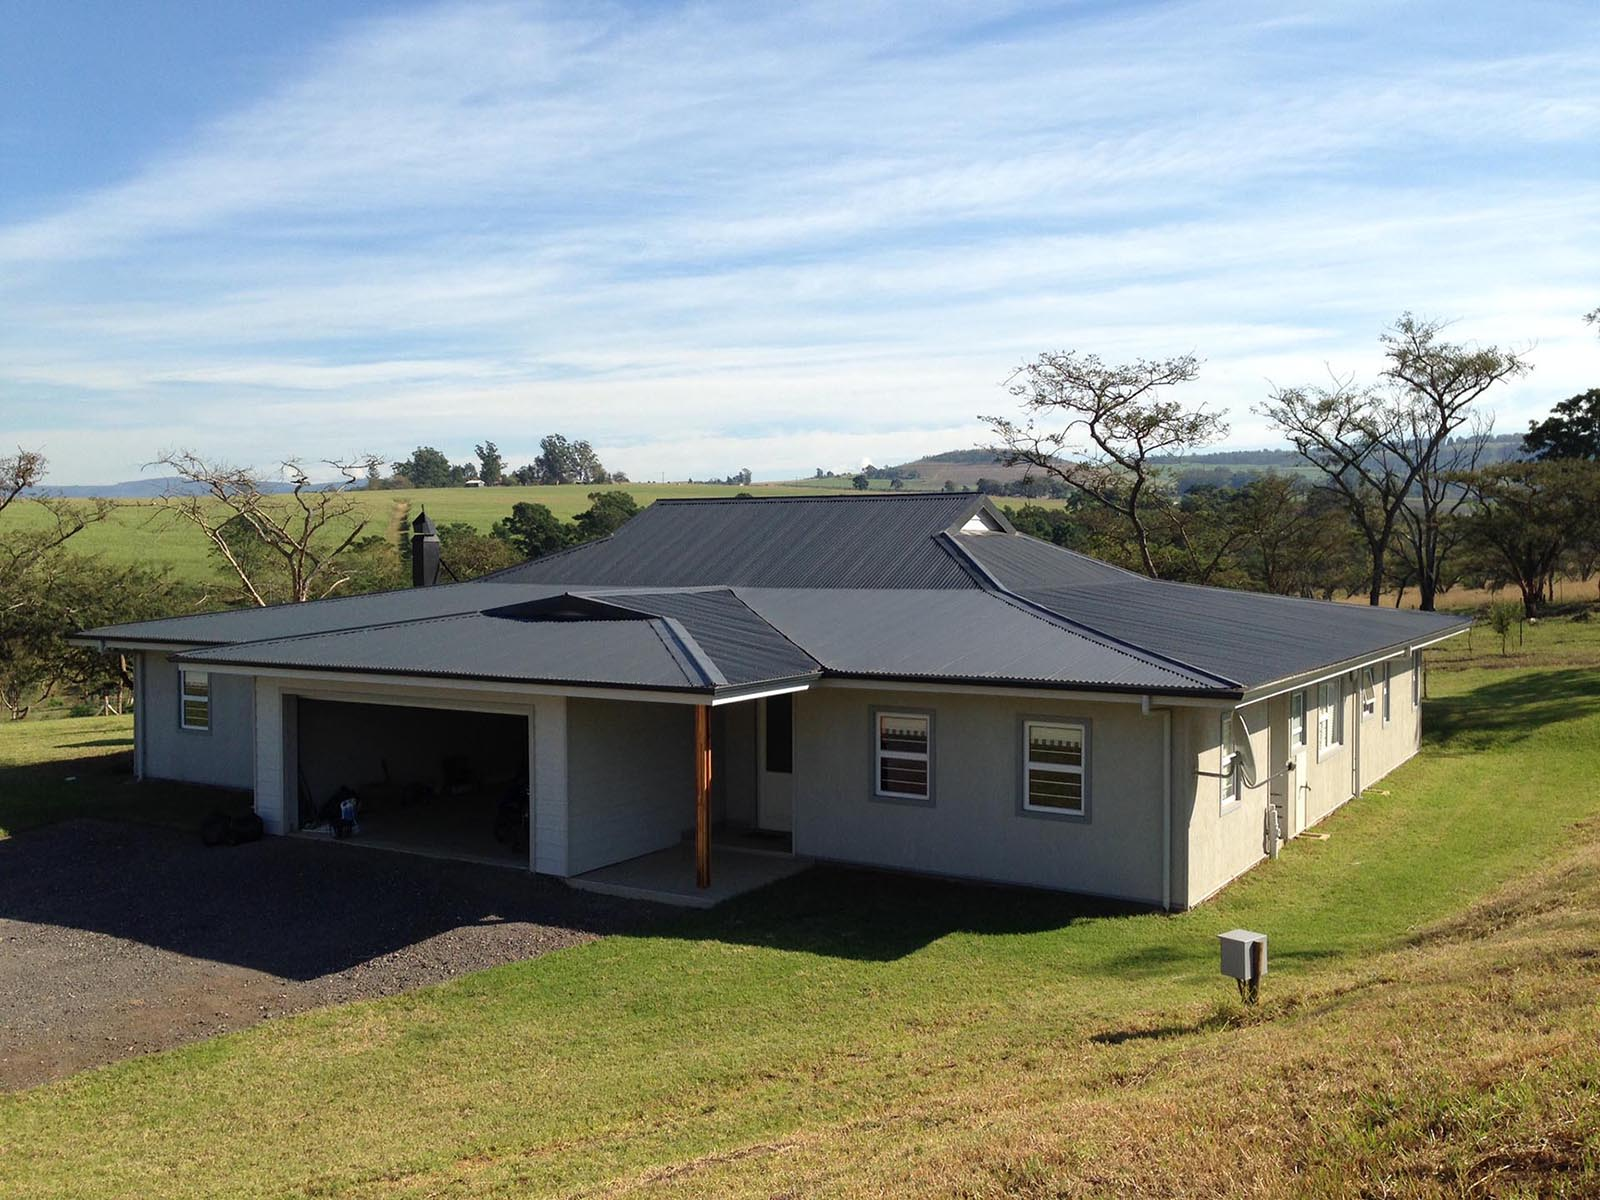 house cumming shospec-project-light-steel-frame-building-lsf-construction-Bishopstowe-Pietermaritzburg-kzn